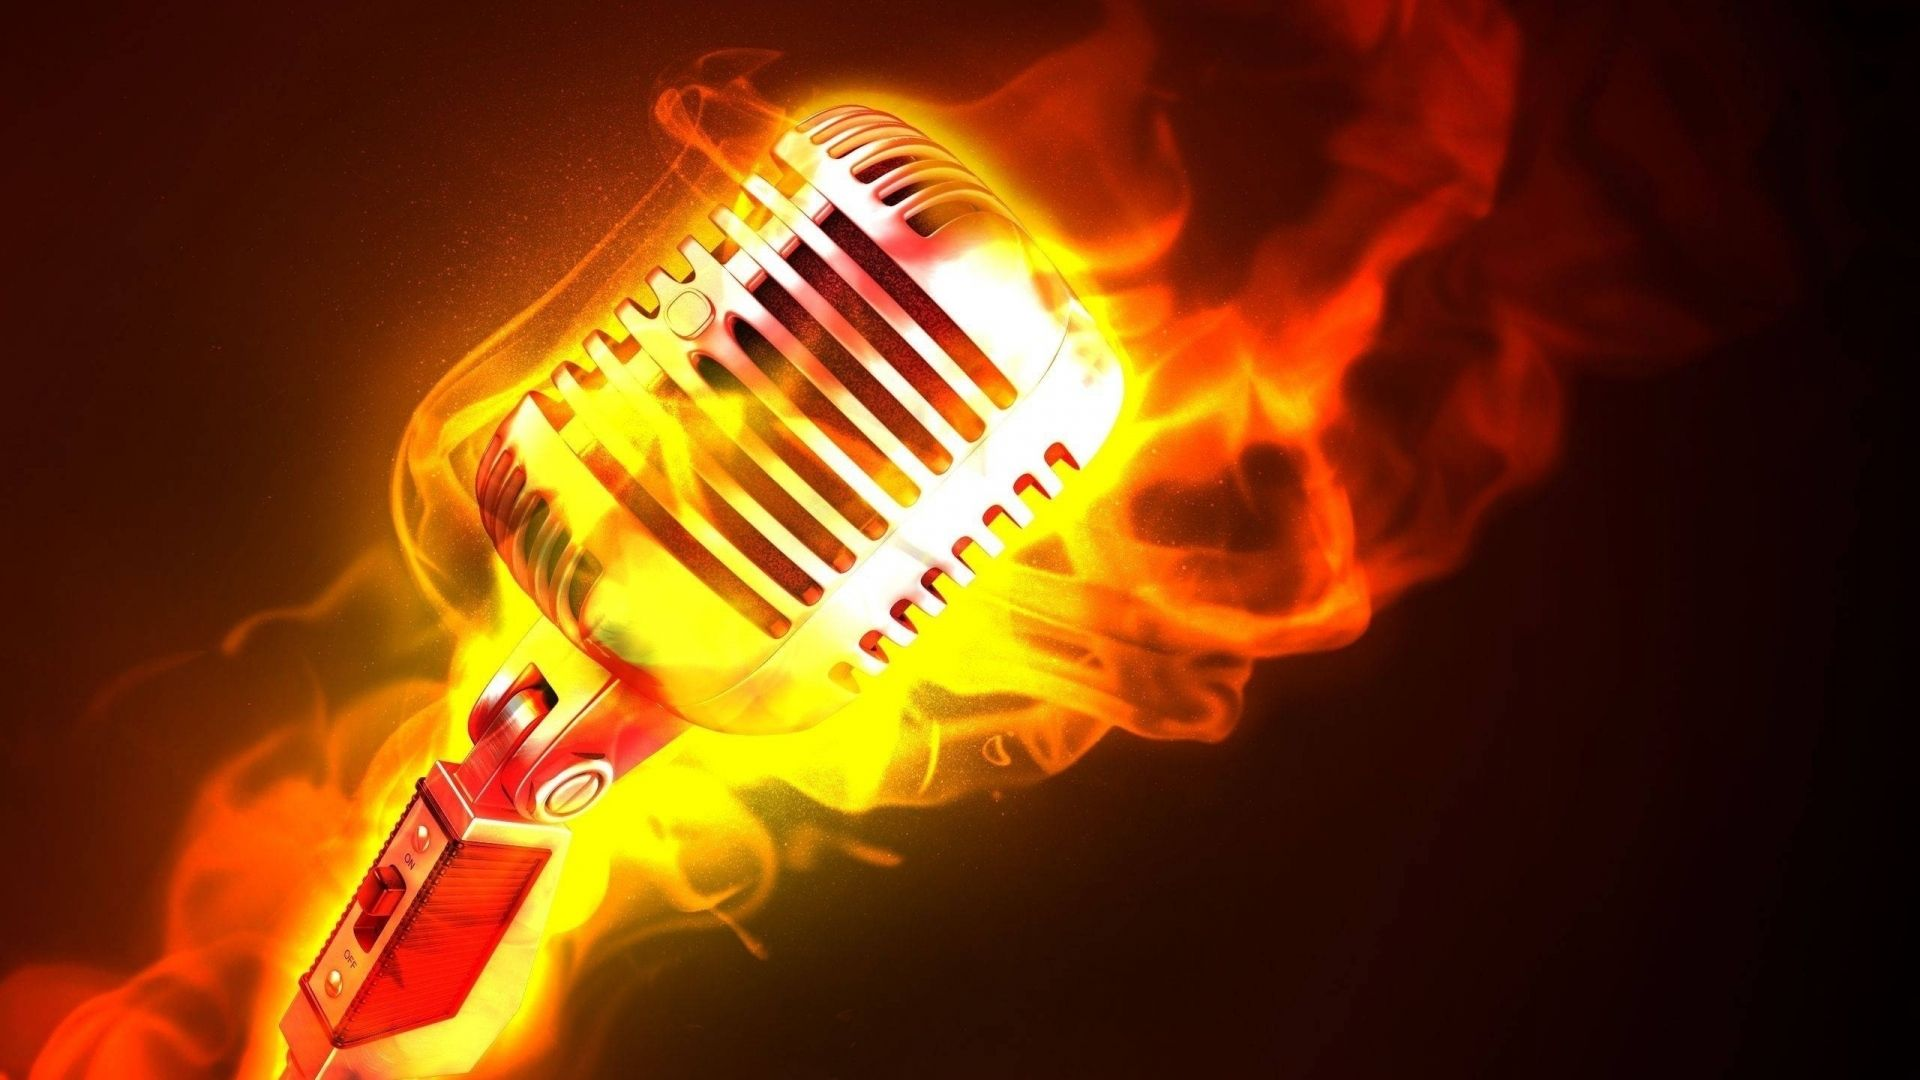 Full Hd 1080p Microphone Wallpapers Hd Desktop Backgrounds All